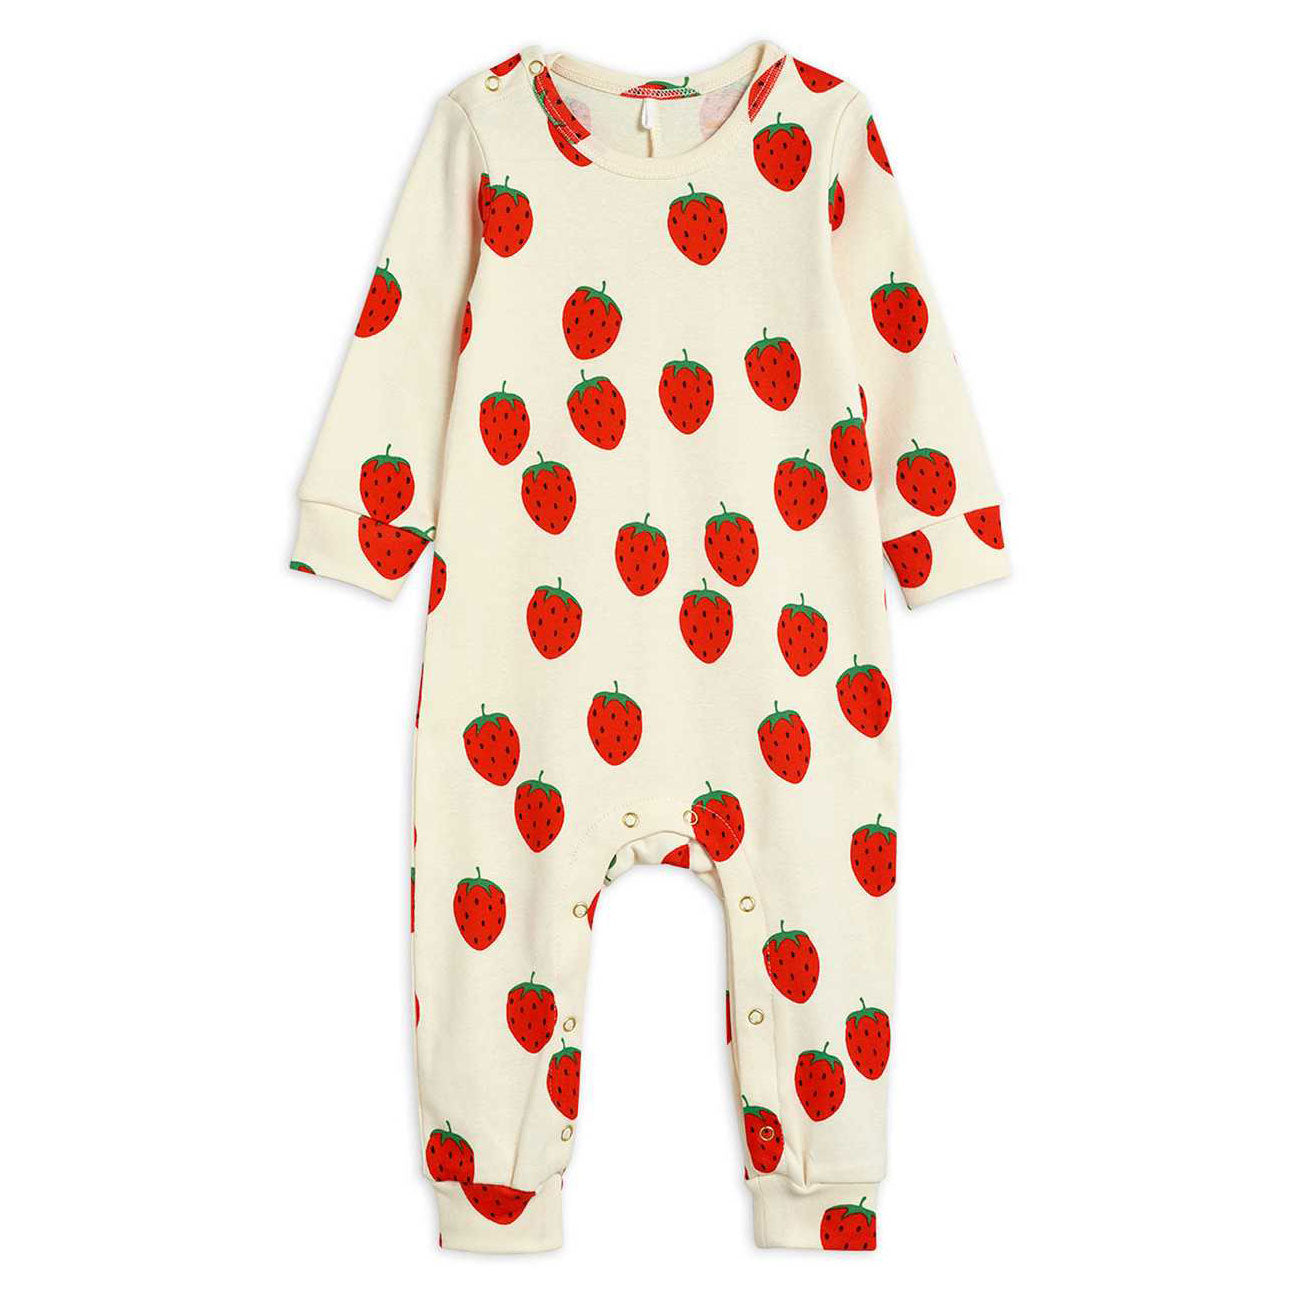 Mini Rodini Baby Romper with strawberries at Bonjour Baby Baskets